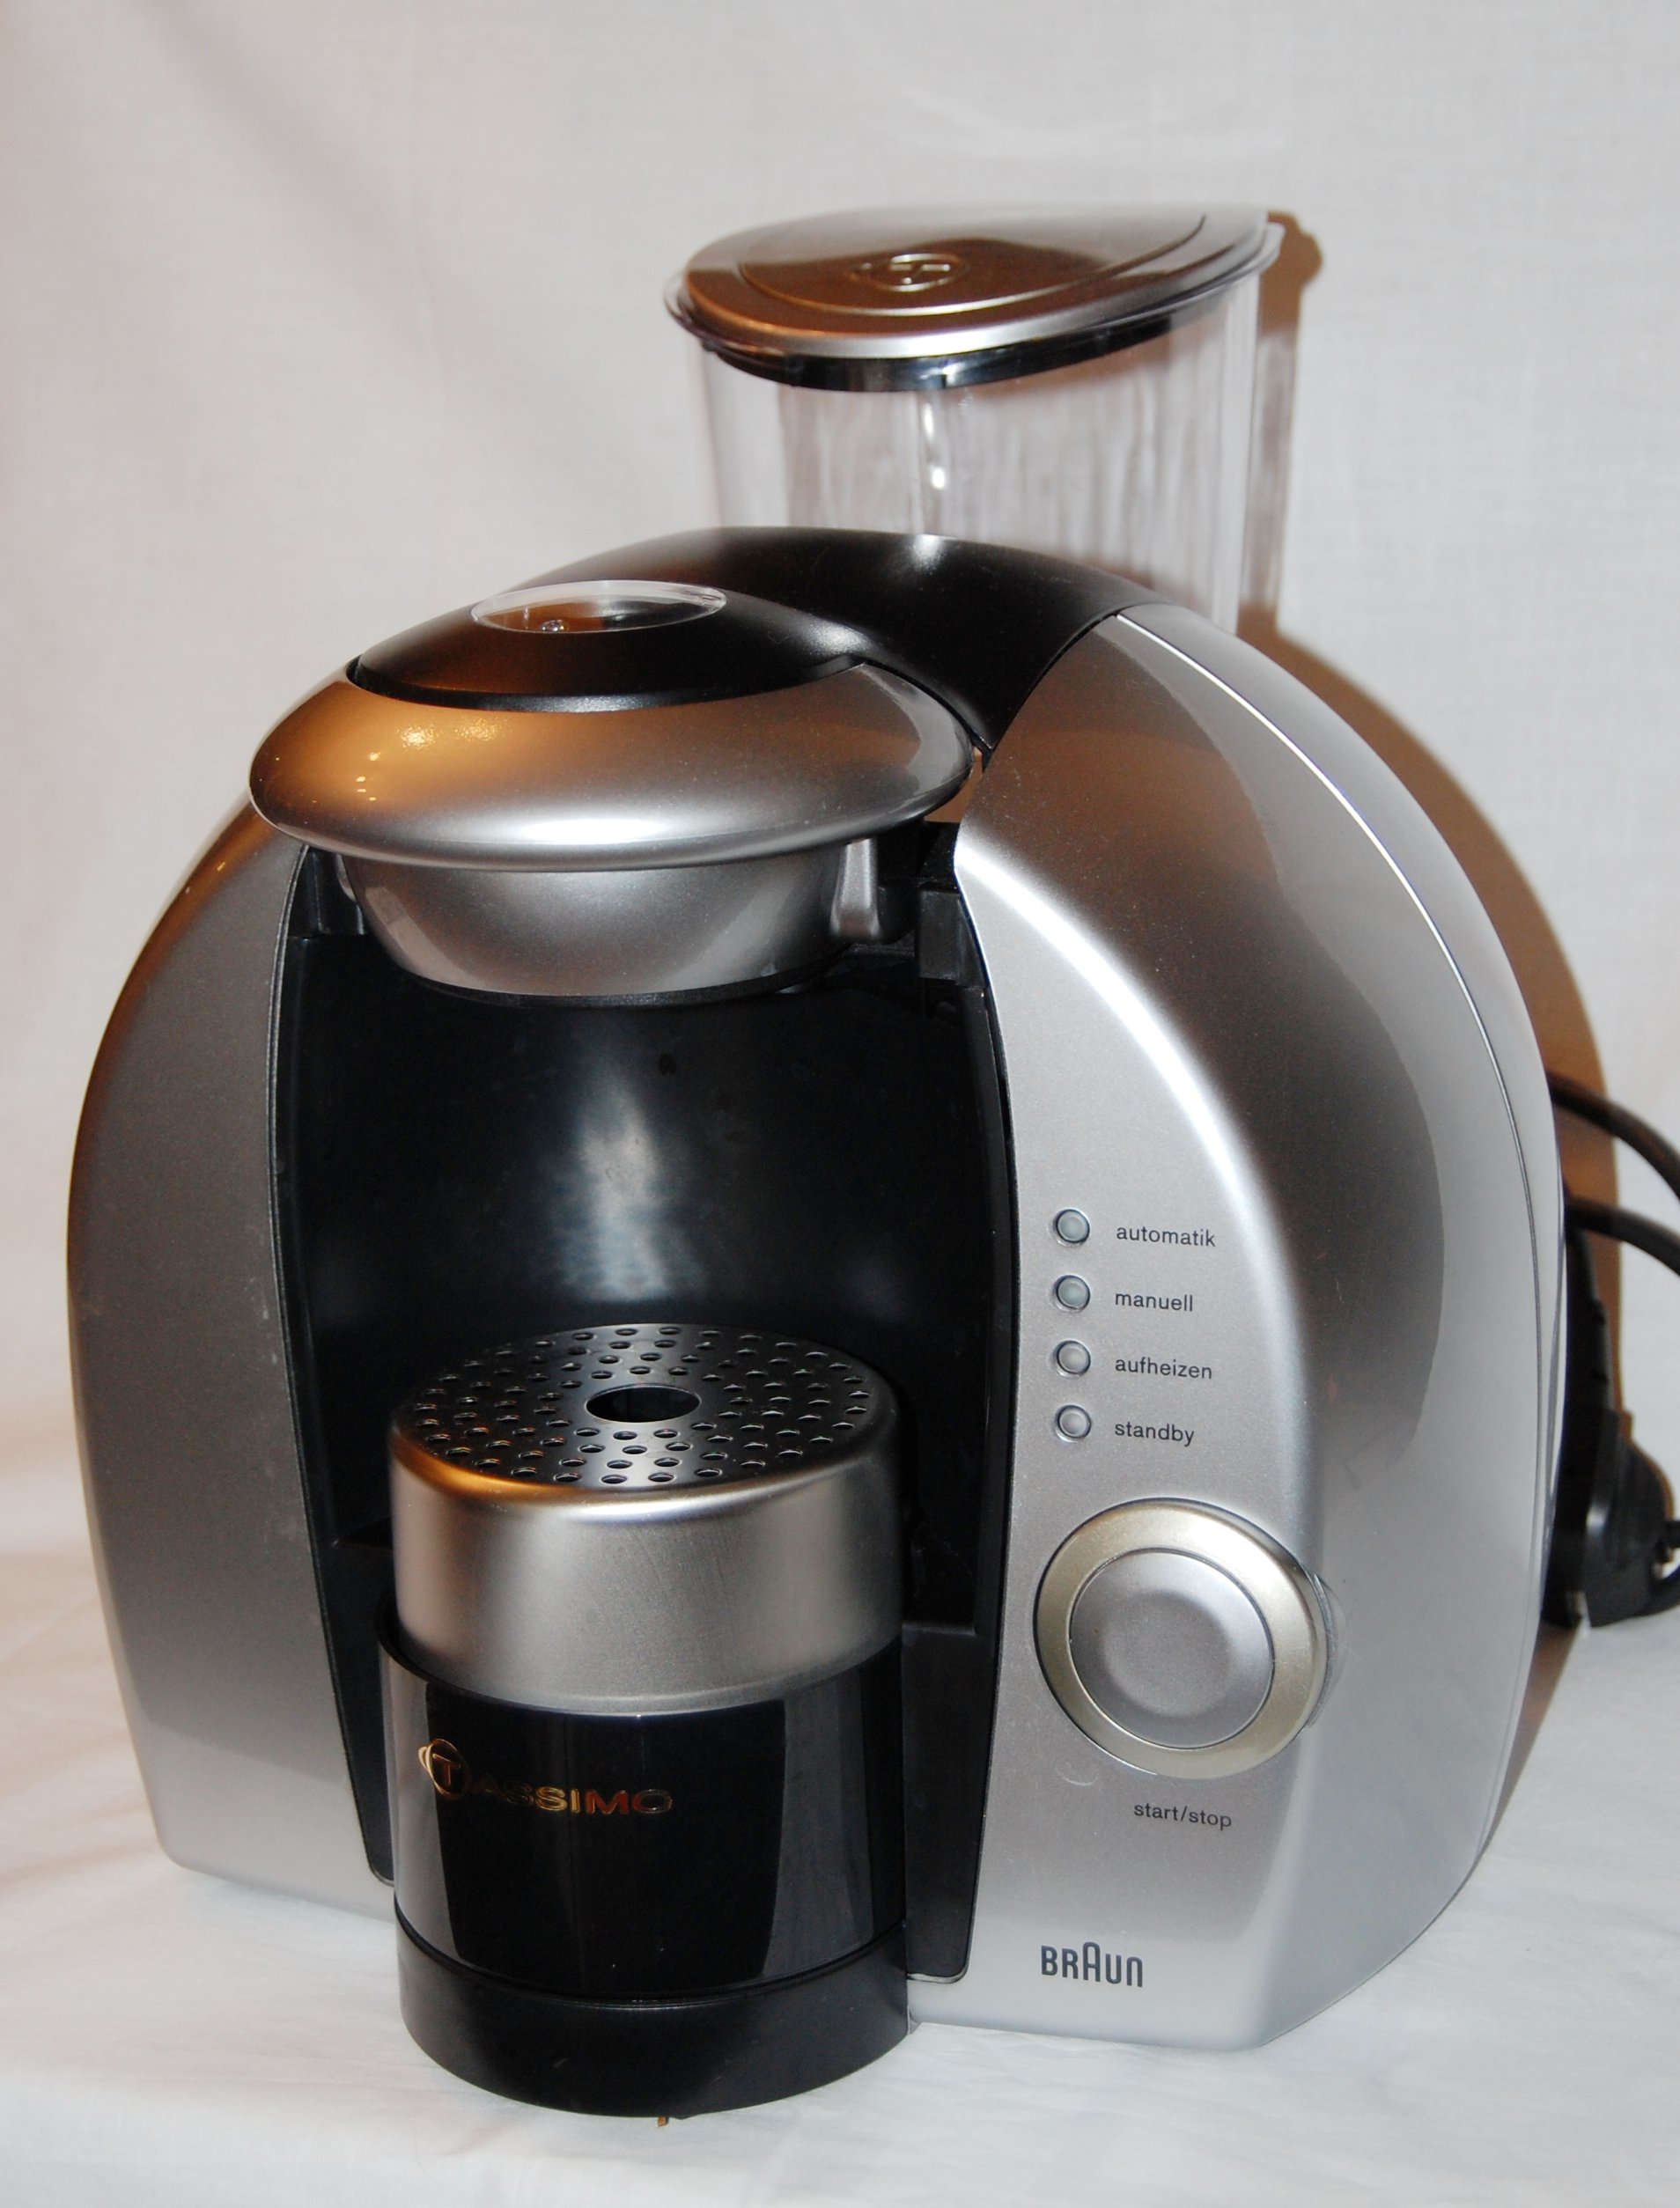 Braun Coffee Maker Repair Manual